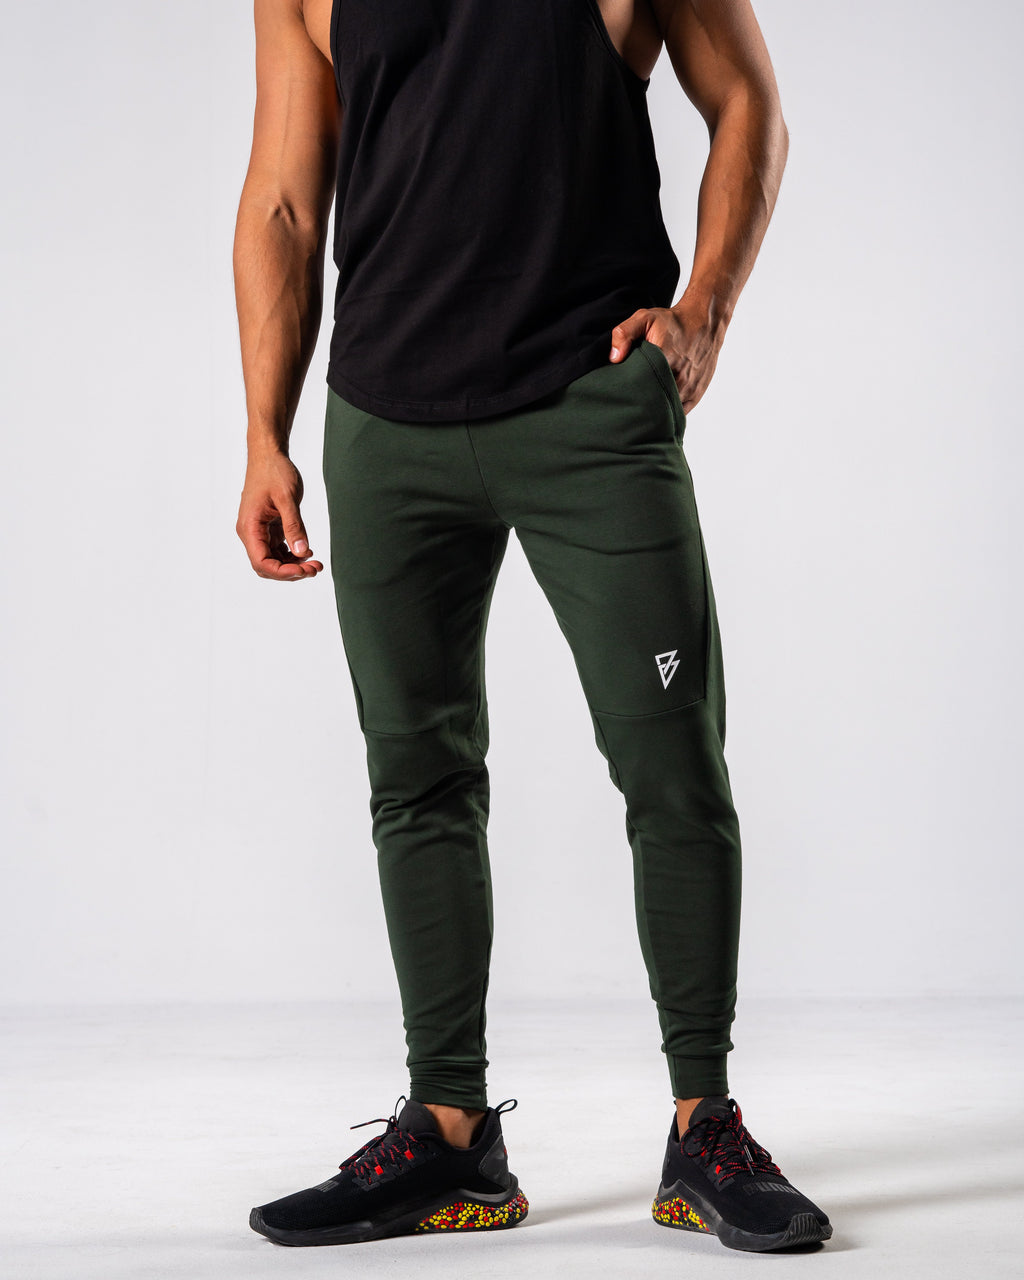 FÍO Tapered Joggers - Olive - FIO Athletics